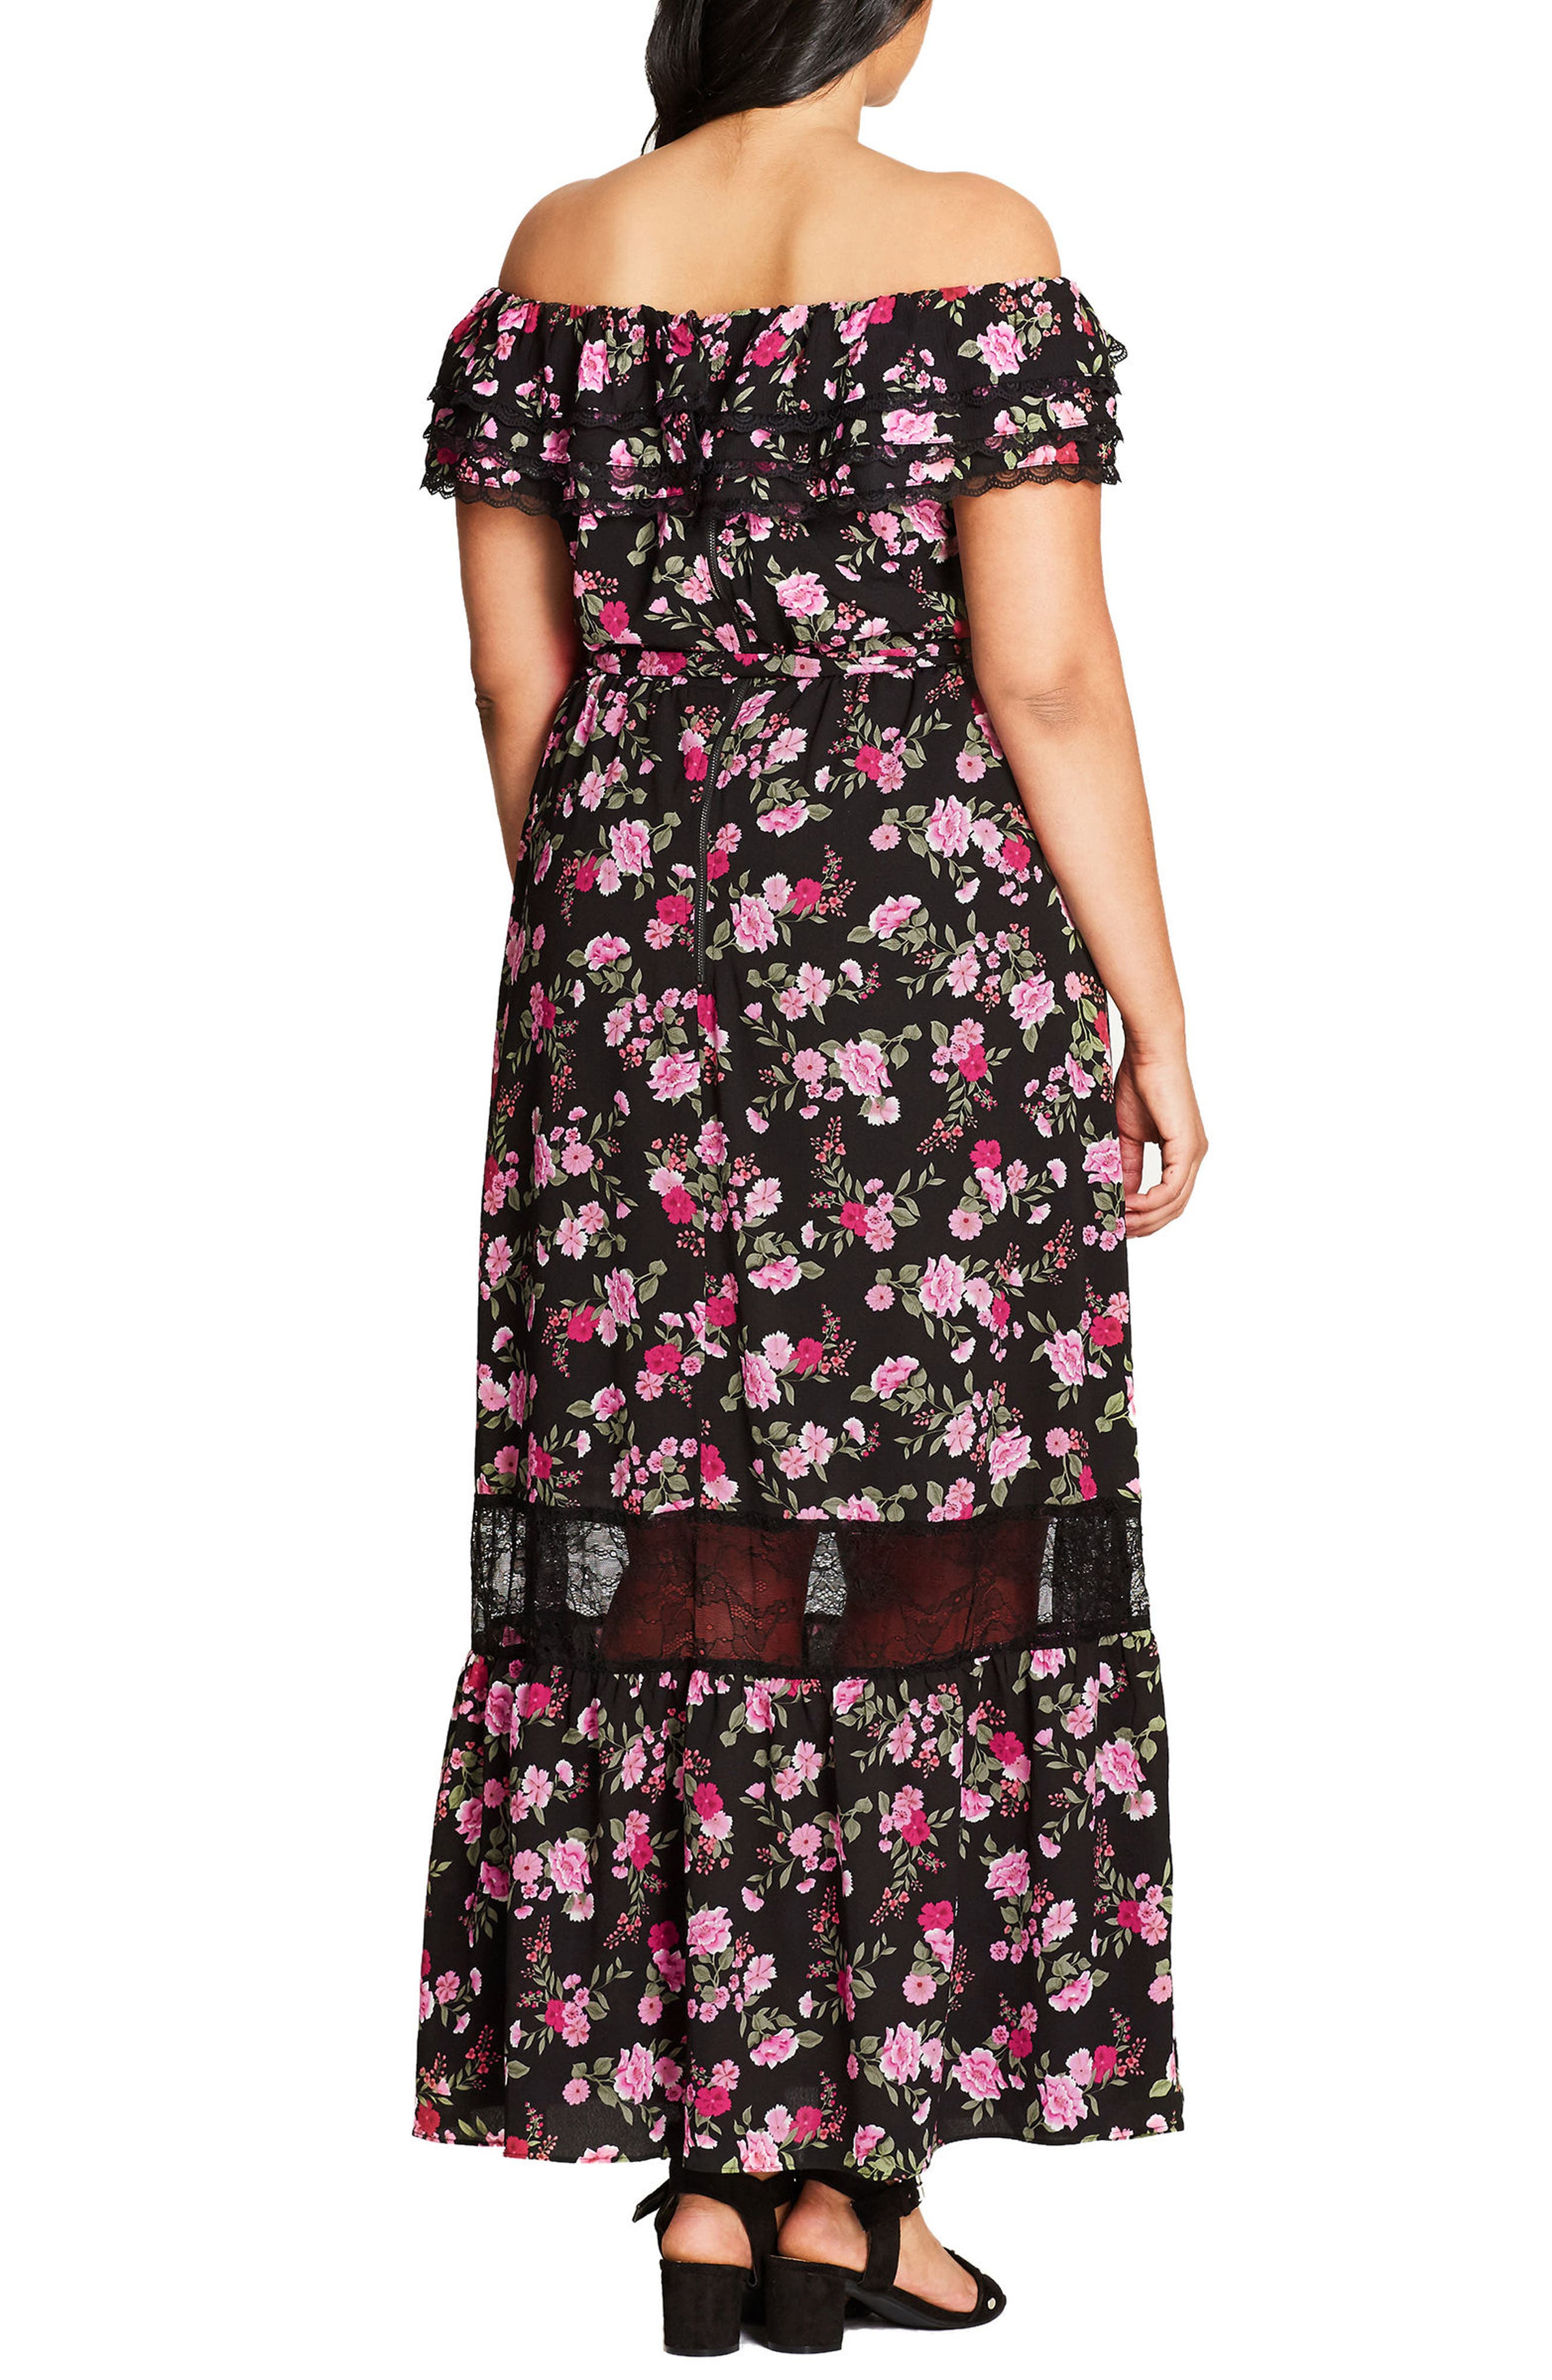 Free Love Floral Off the Shoulder Maxi Dress,                             Alternate thumbnail 2, color,                             602